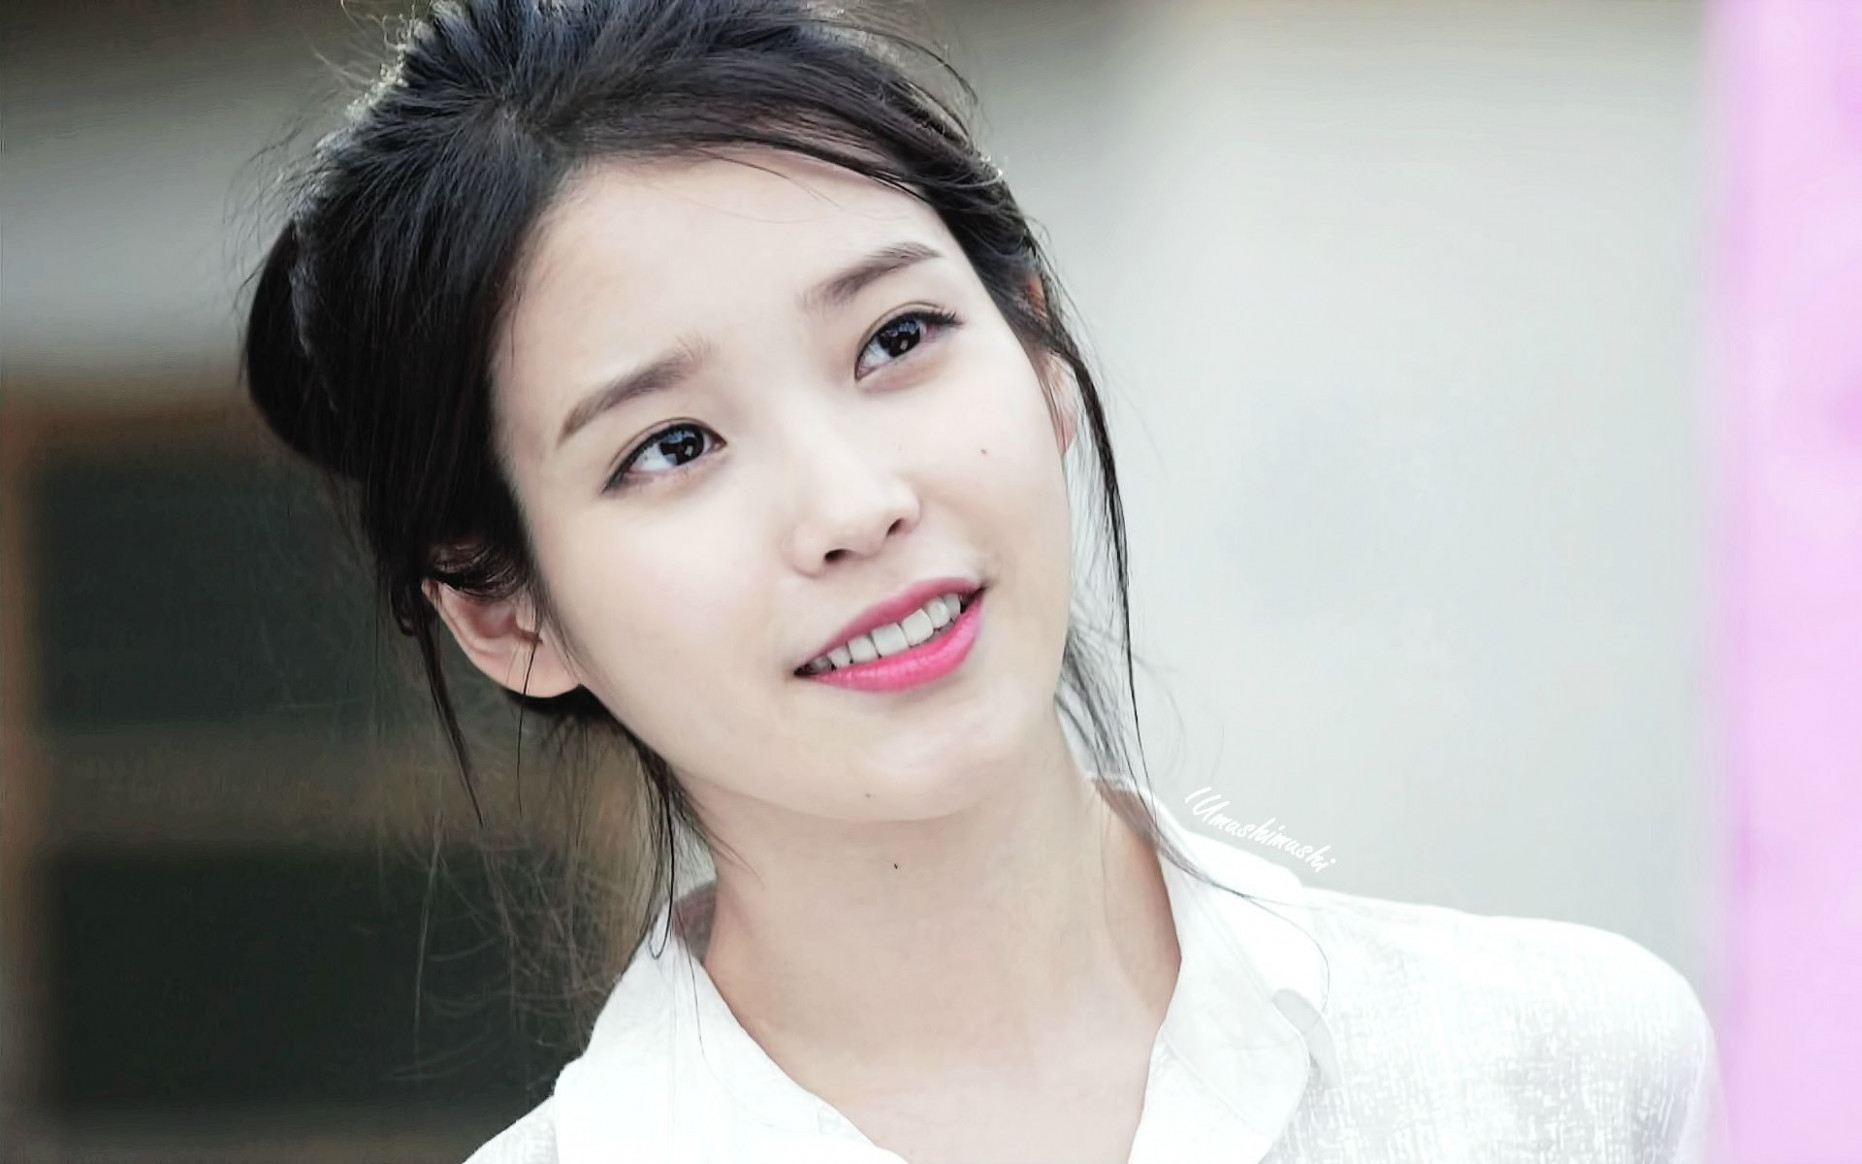 Wallpaper Artis Korea Terpopuler K Pop Iu HD